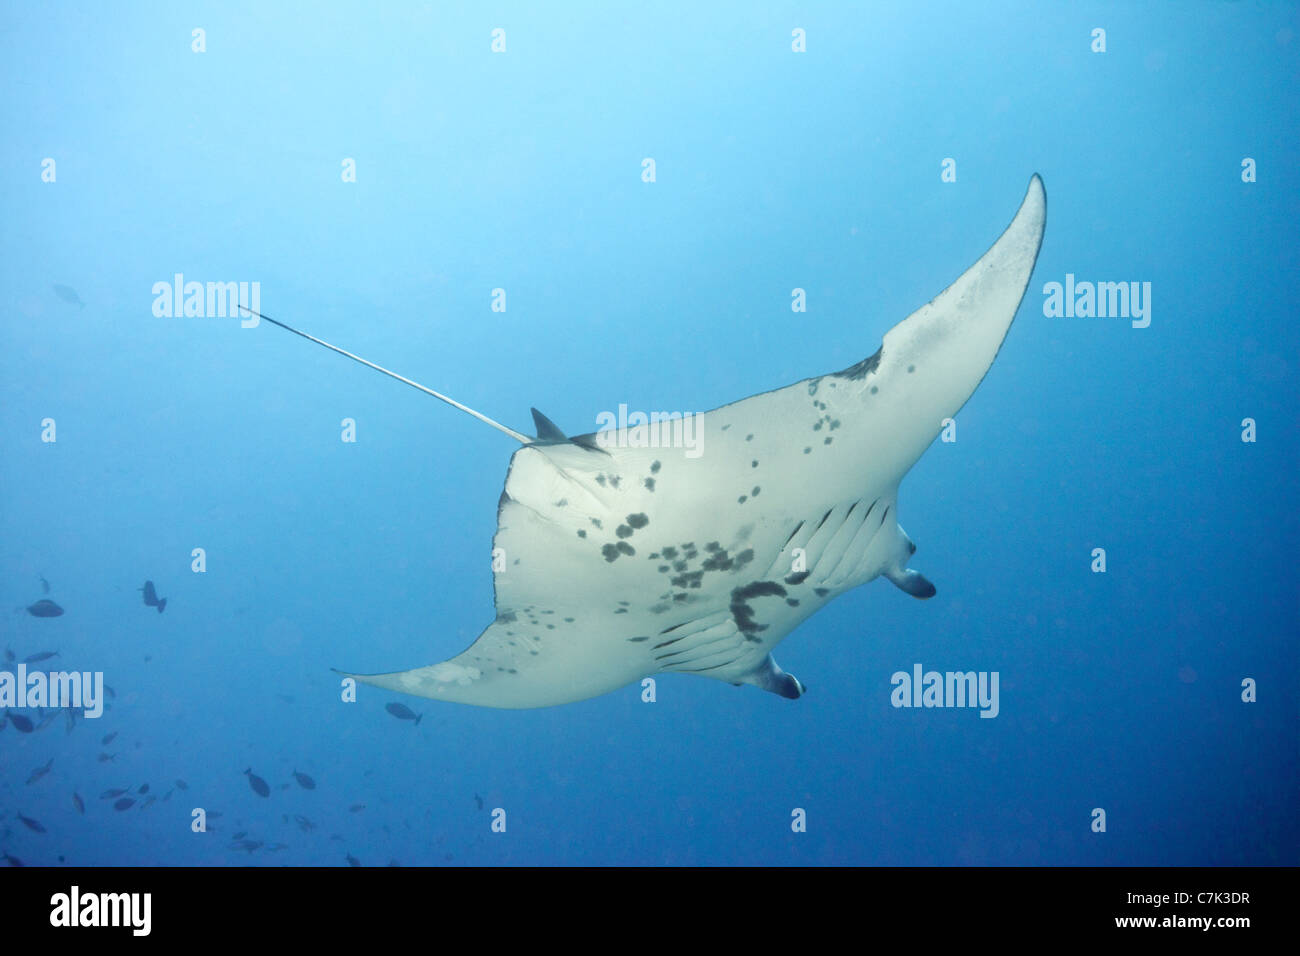 Giant manta ray swimming in ocean Stock Photo